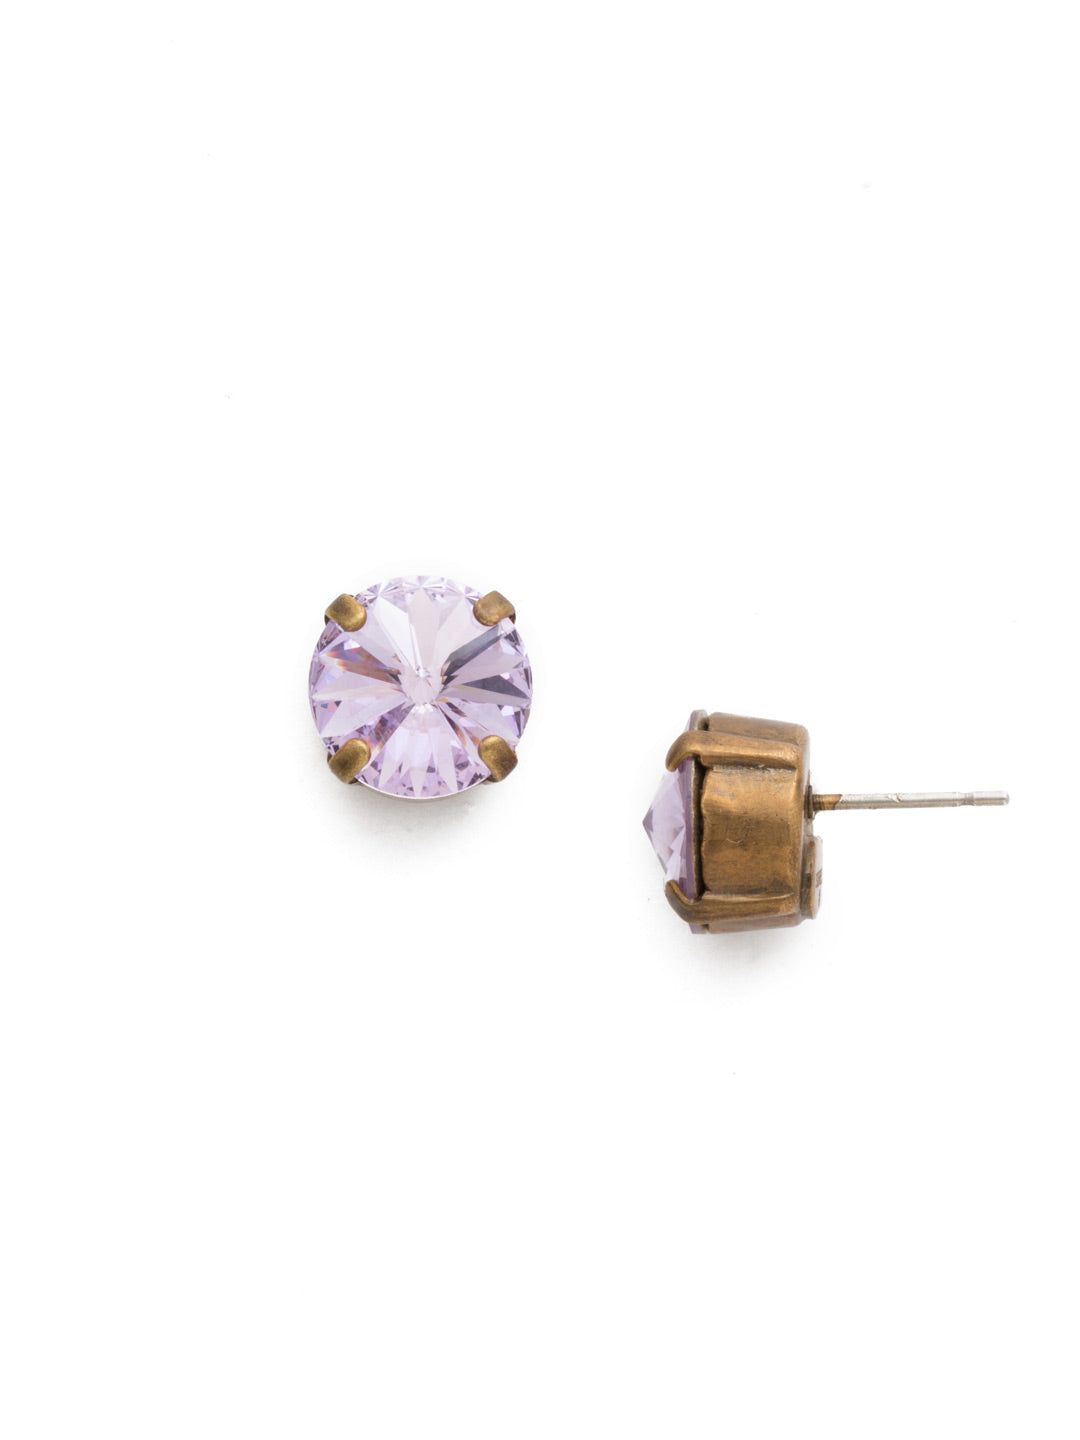 Round Crystal Stud Earrings - ECM14AGVI